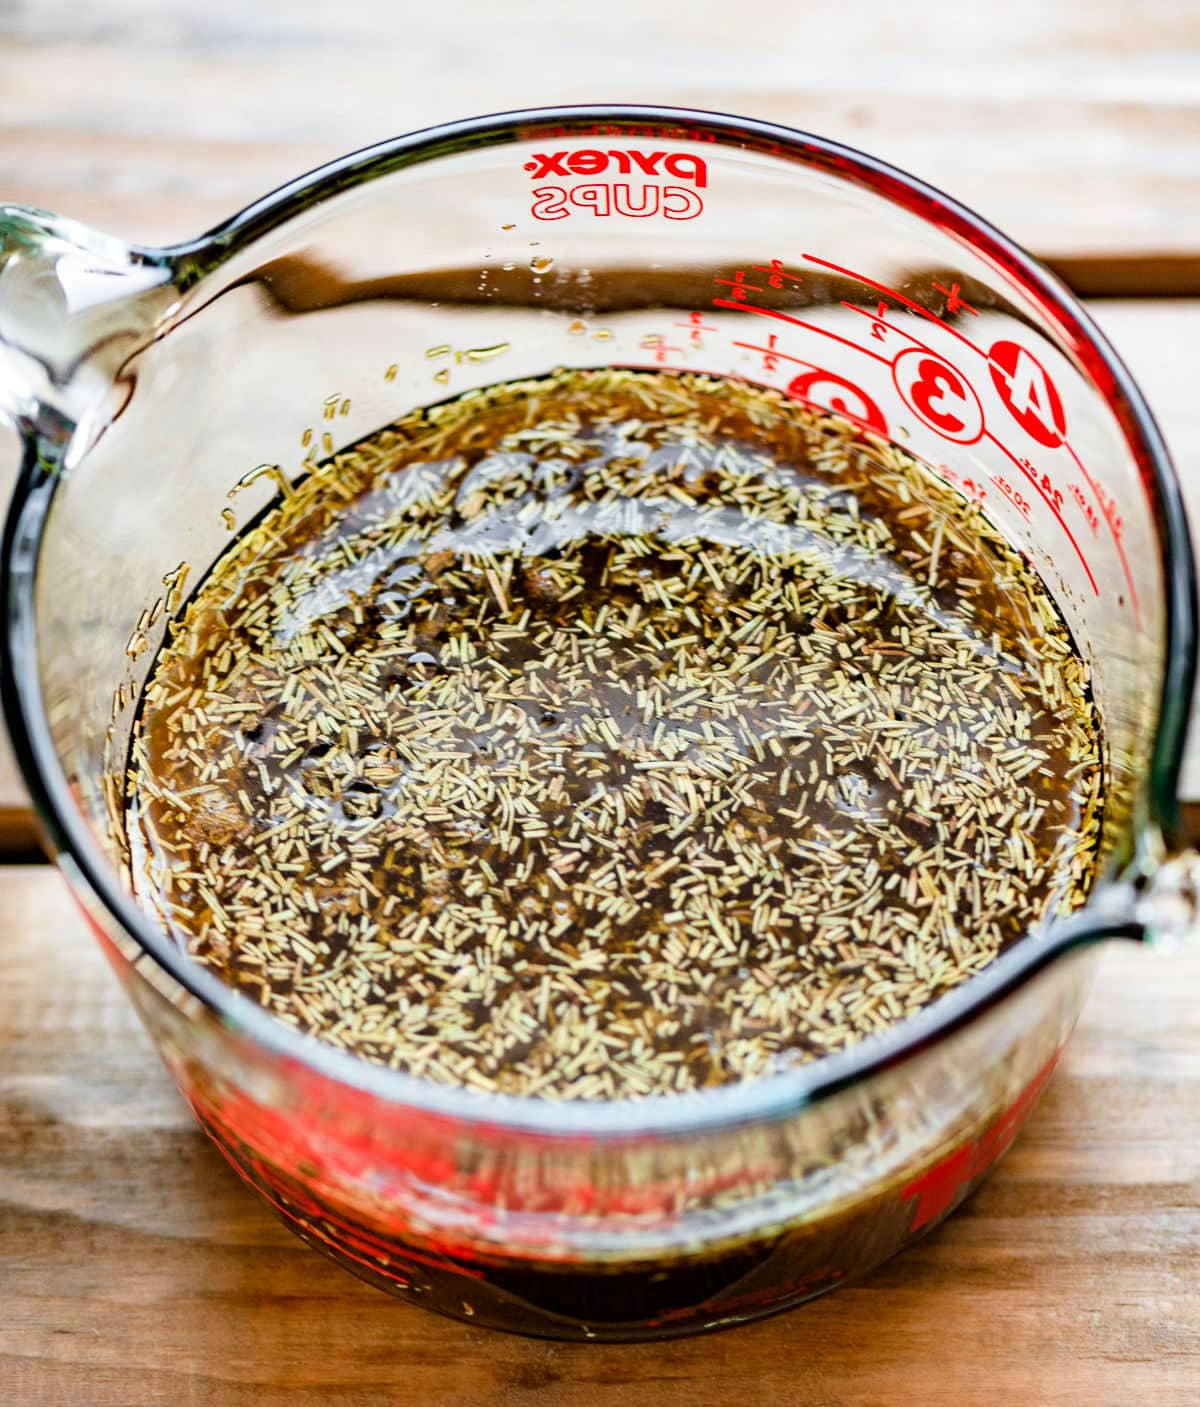 chicken marinade ingredients in a large glass measuring cup.